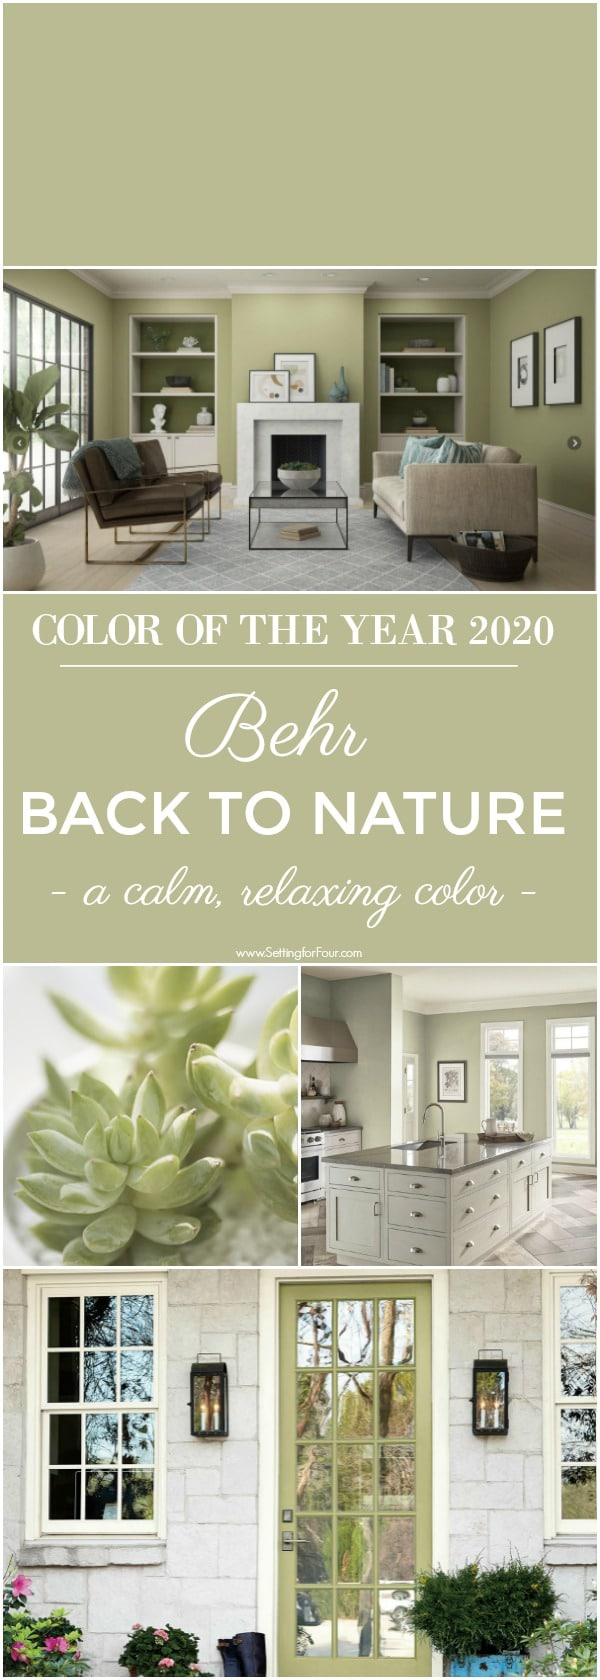 Behr Back To Nature Paint Color, COLOR OF THE YEAR 2020!